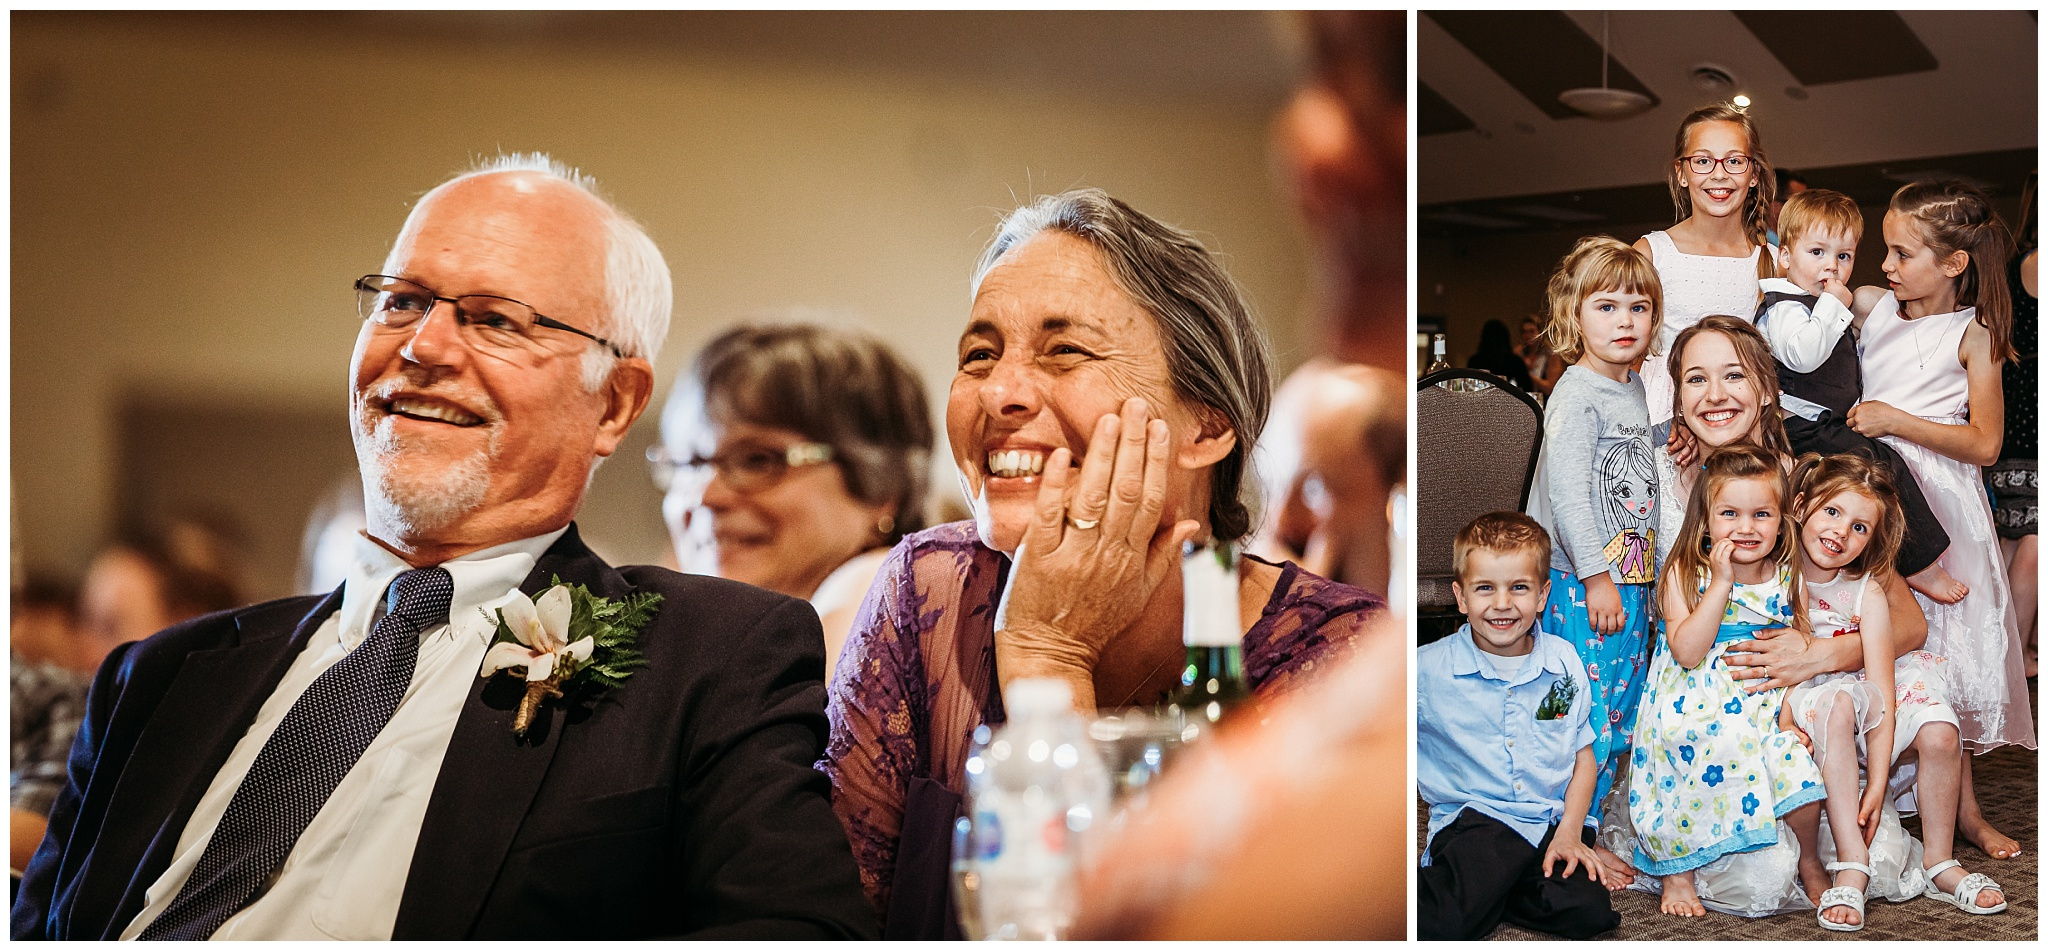 Aldergrove Canadian Reformed Church Wedding Photographer Christian Romantic Candid Documentary Moody_0042.jpg